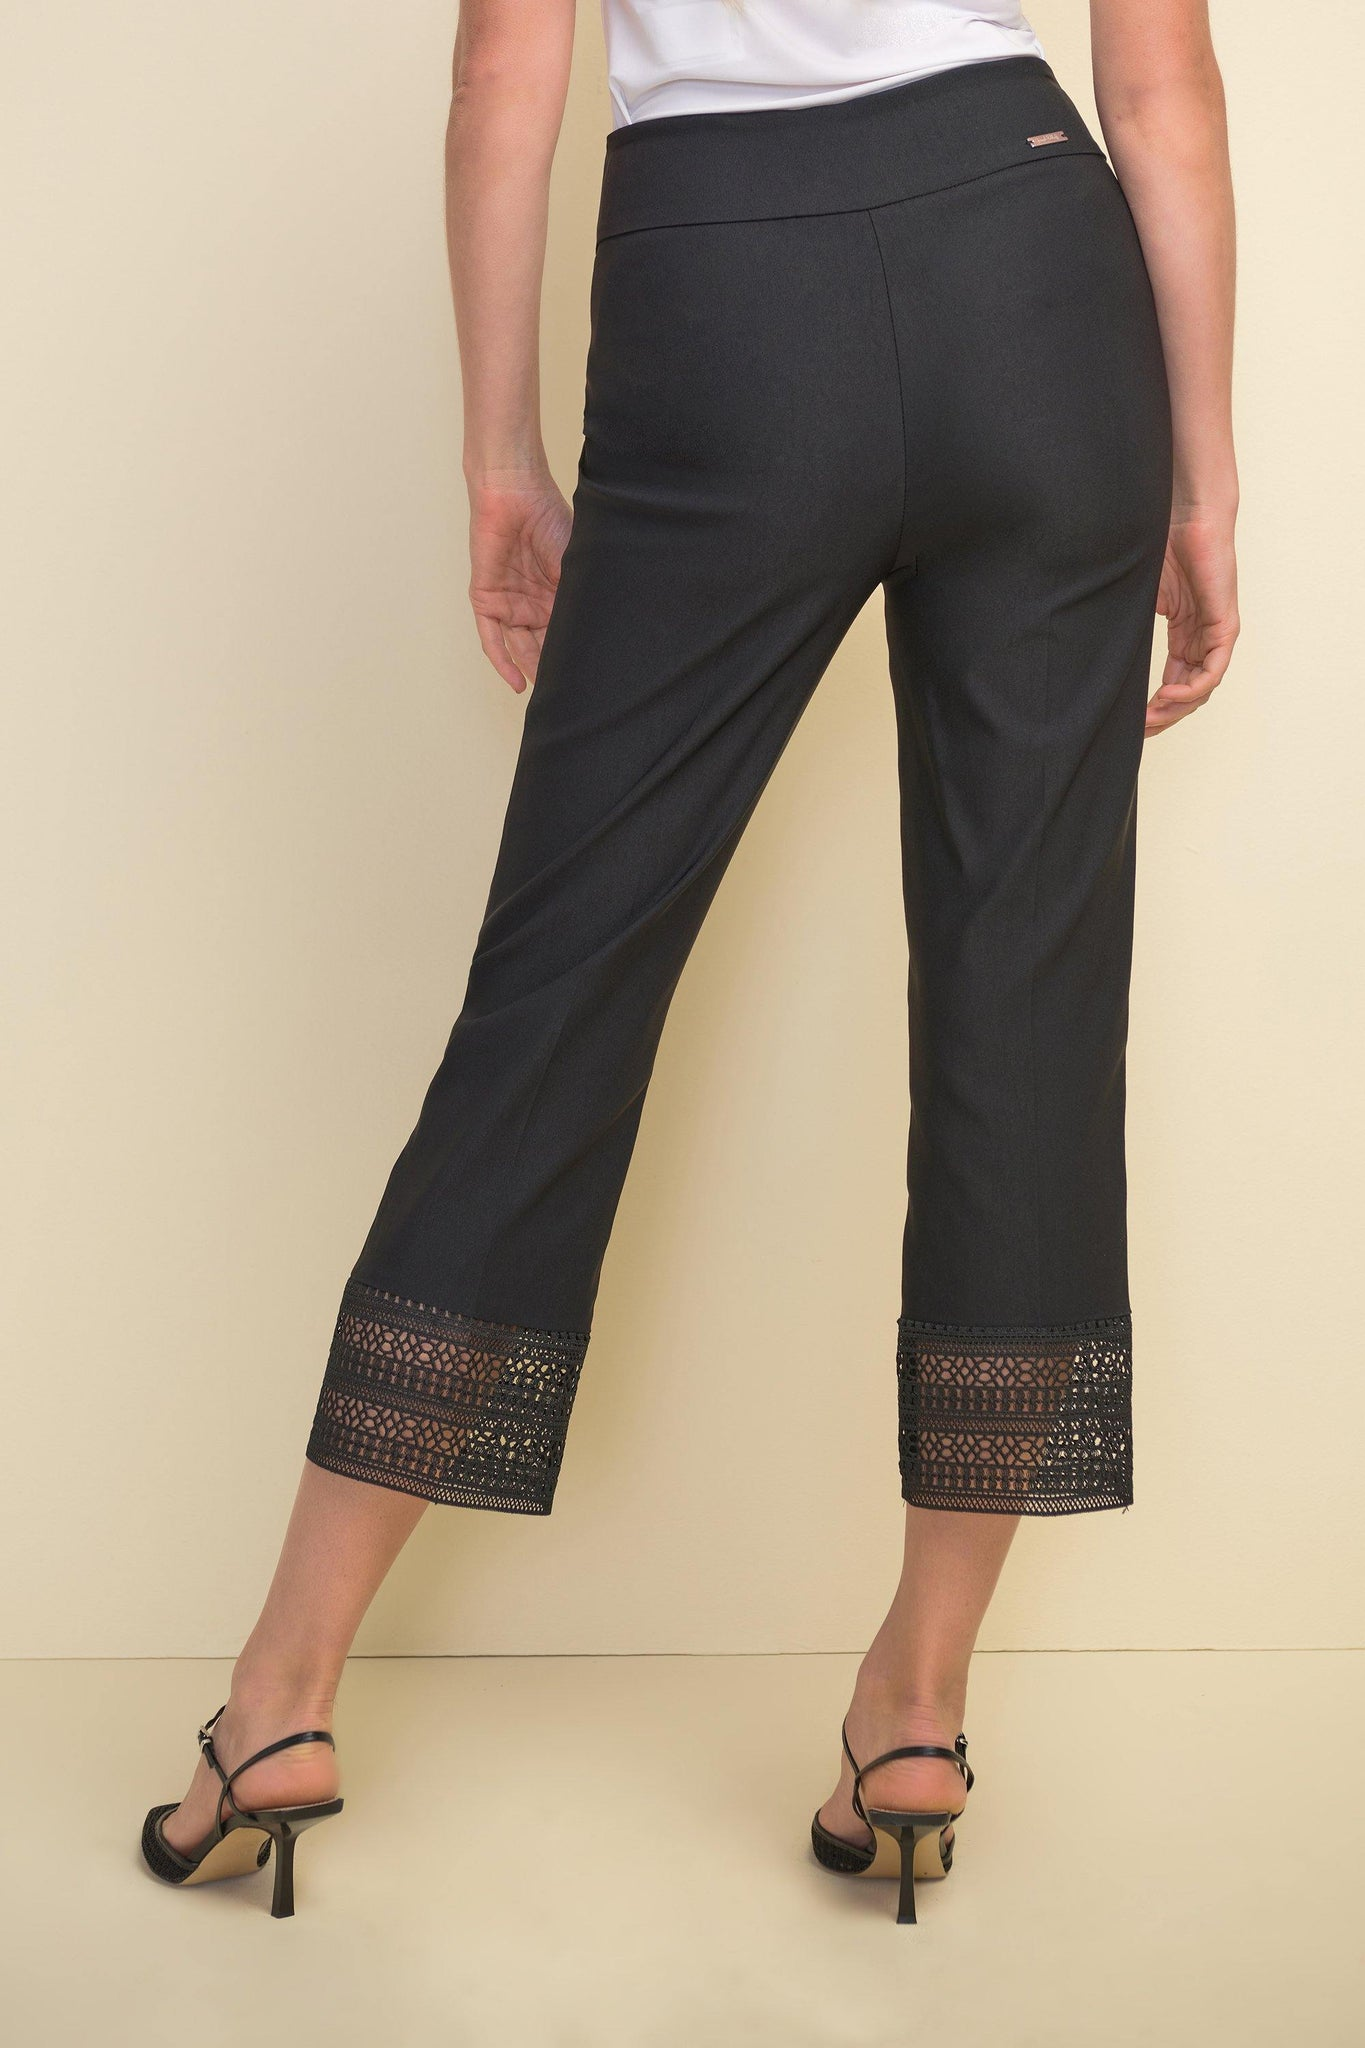 White Cropped Pant from Joseph Ribkoff 211436 - Weekends on 2nd Ave